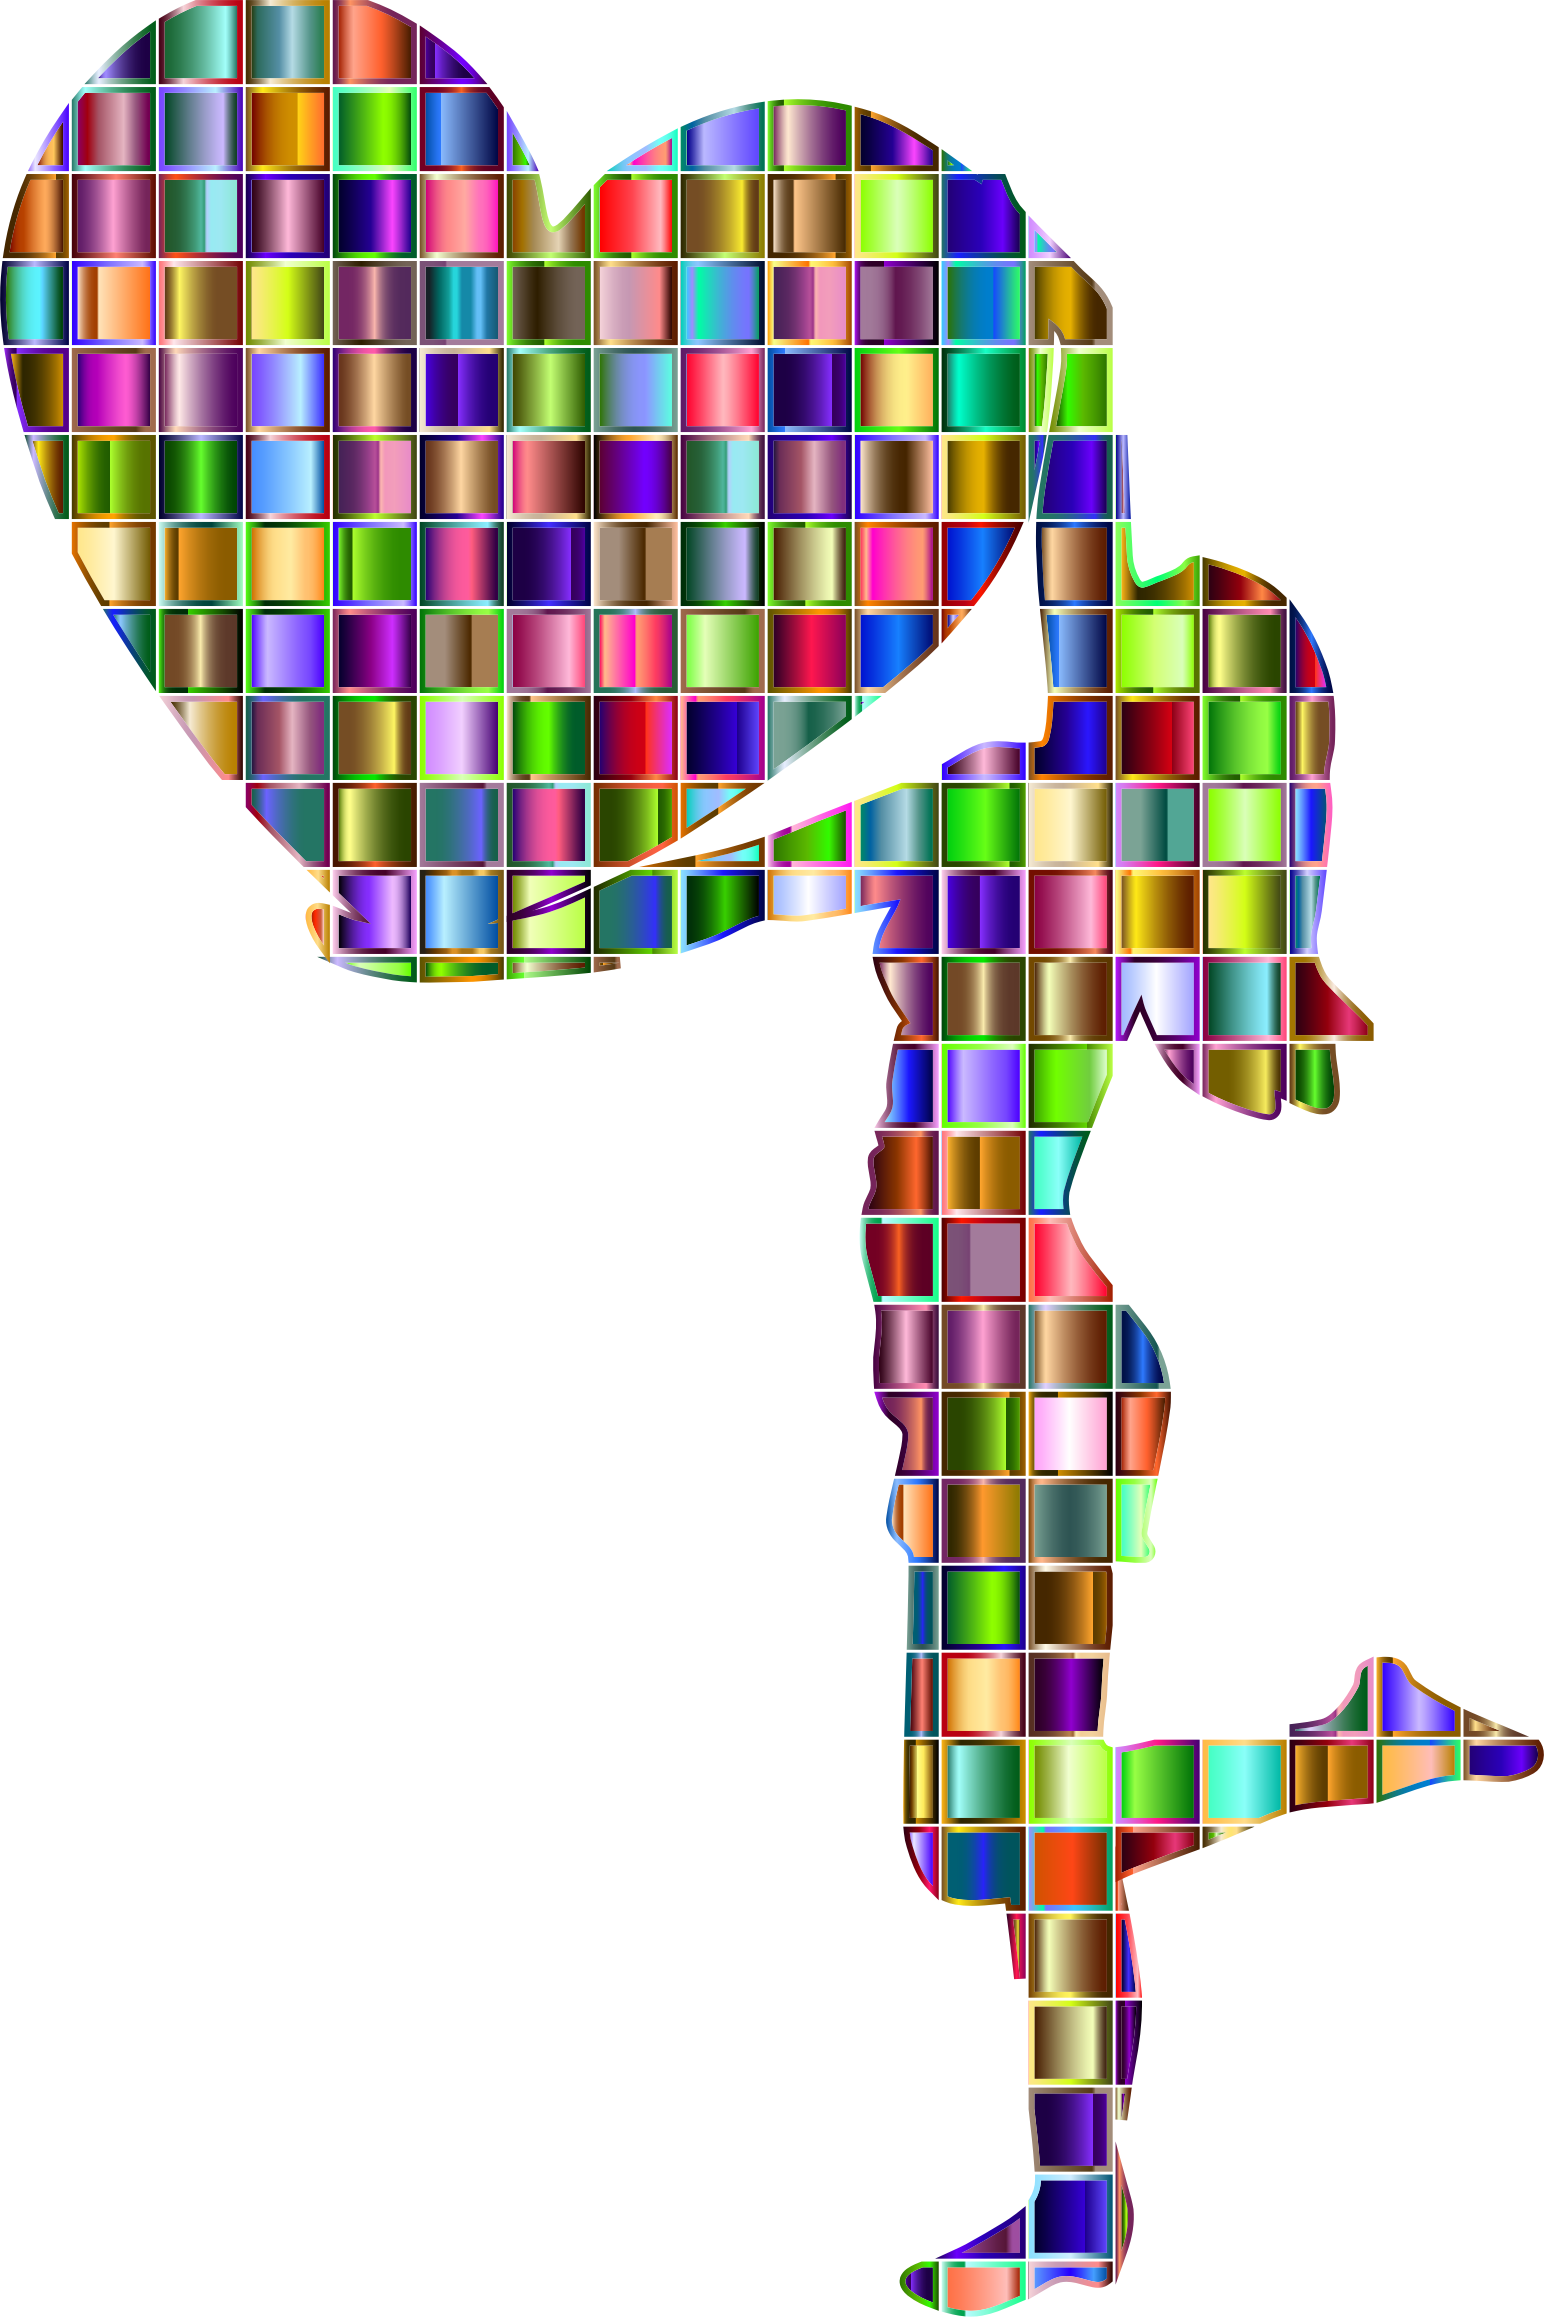 Chromatic Mosaic Woman With Big Heart by GDJ